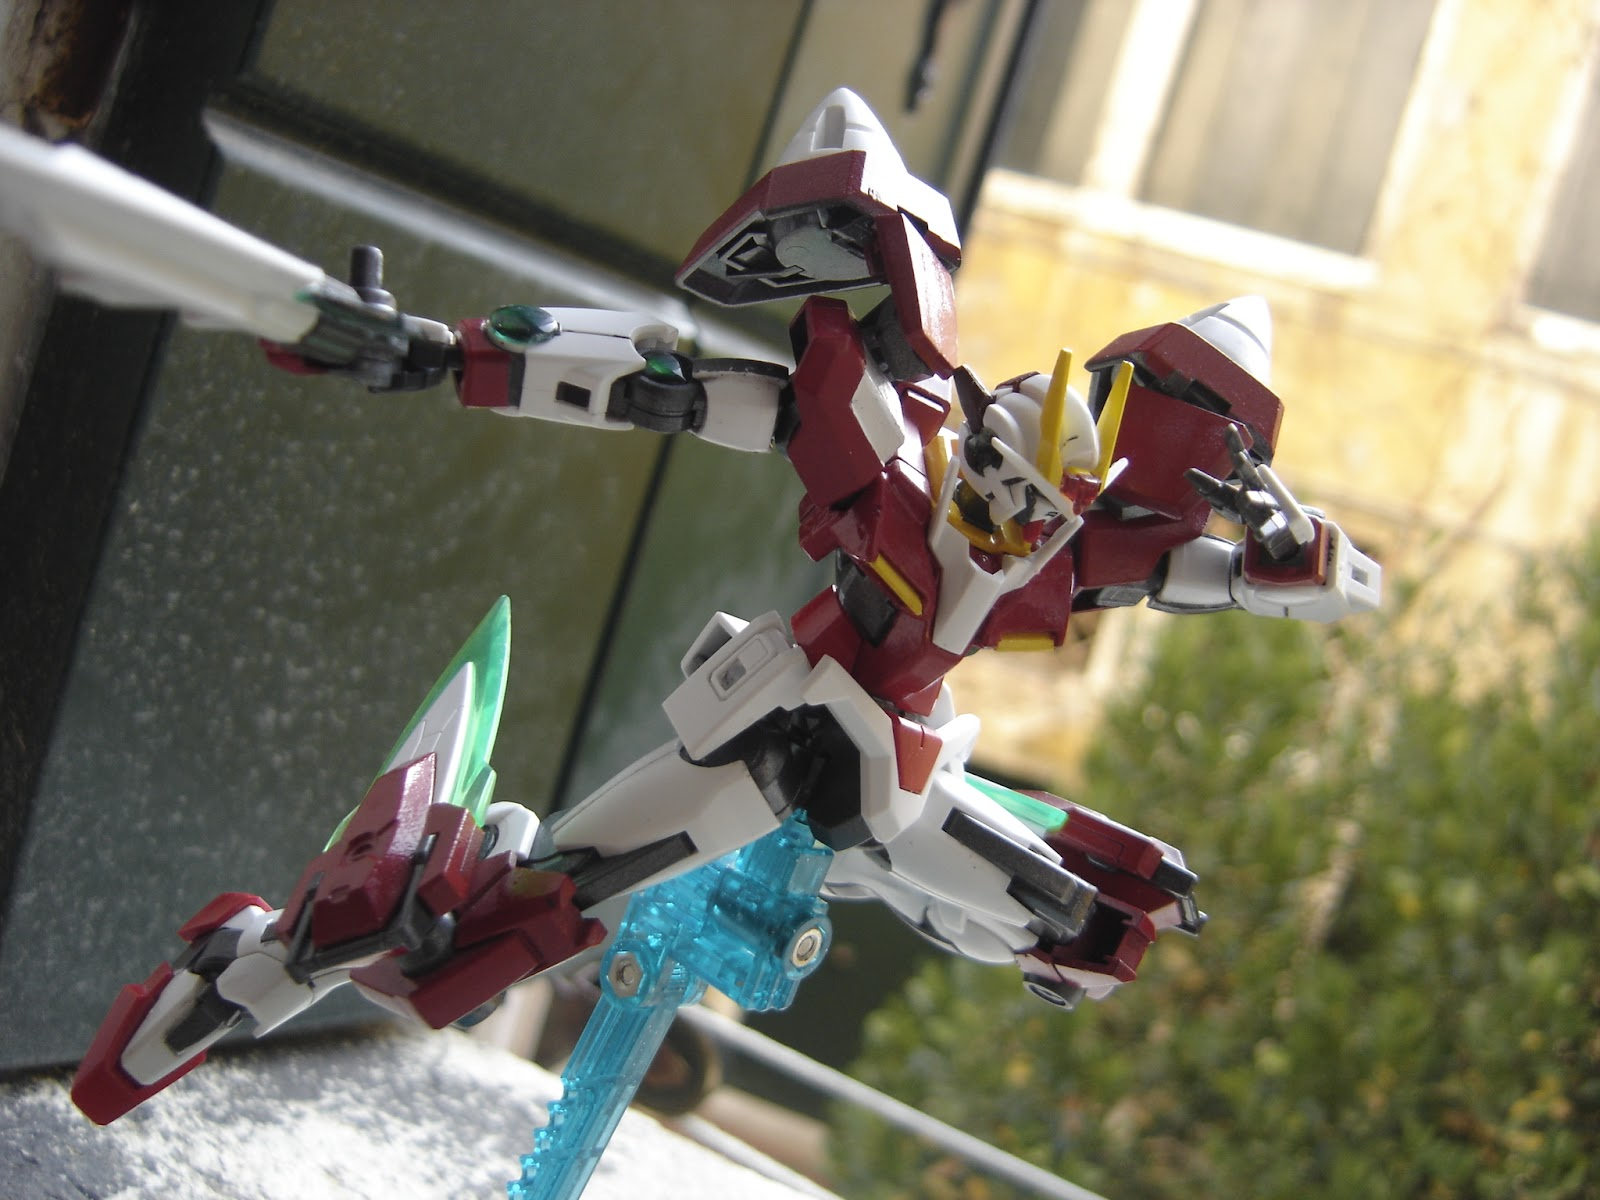 00 GUNDAM SEVEN SWORD/G HG 1/144 part 1